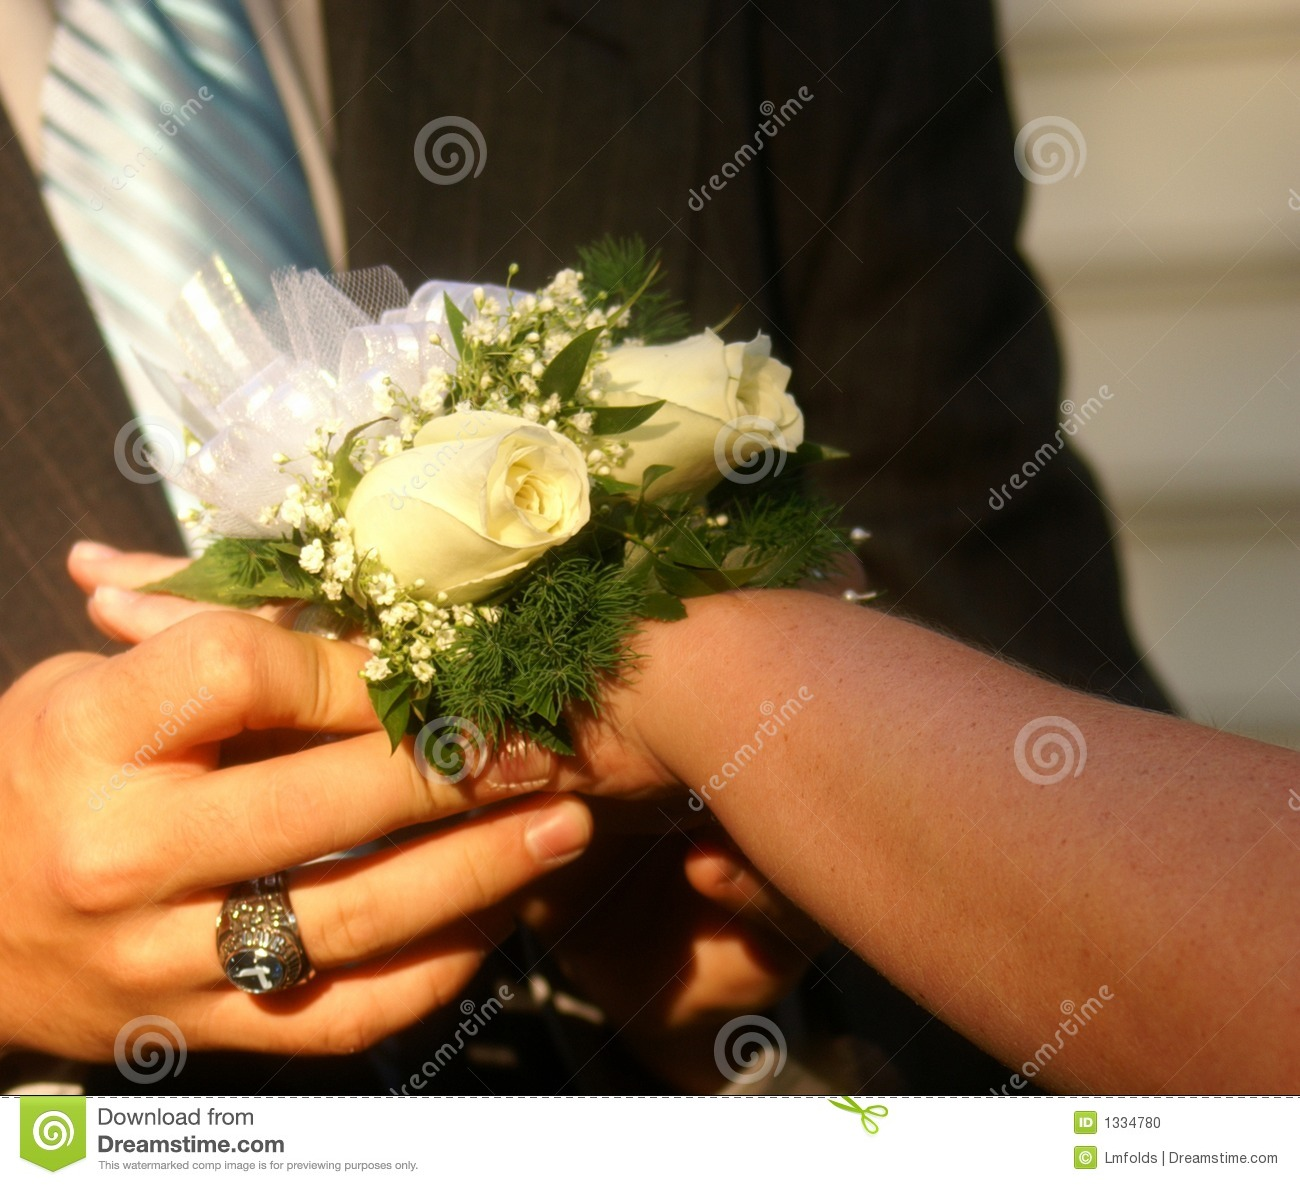 Dance Corsage on Wrist stock photo  Image of friend, courter